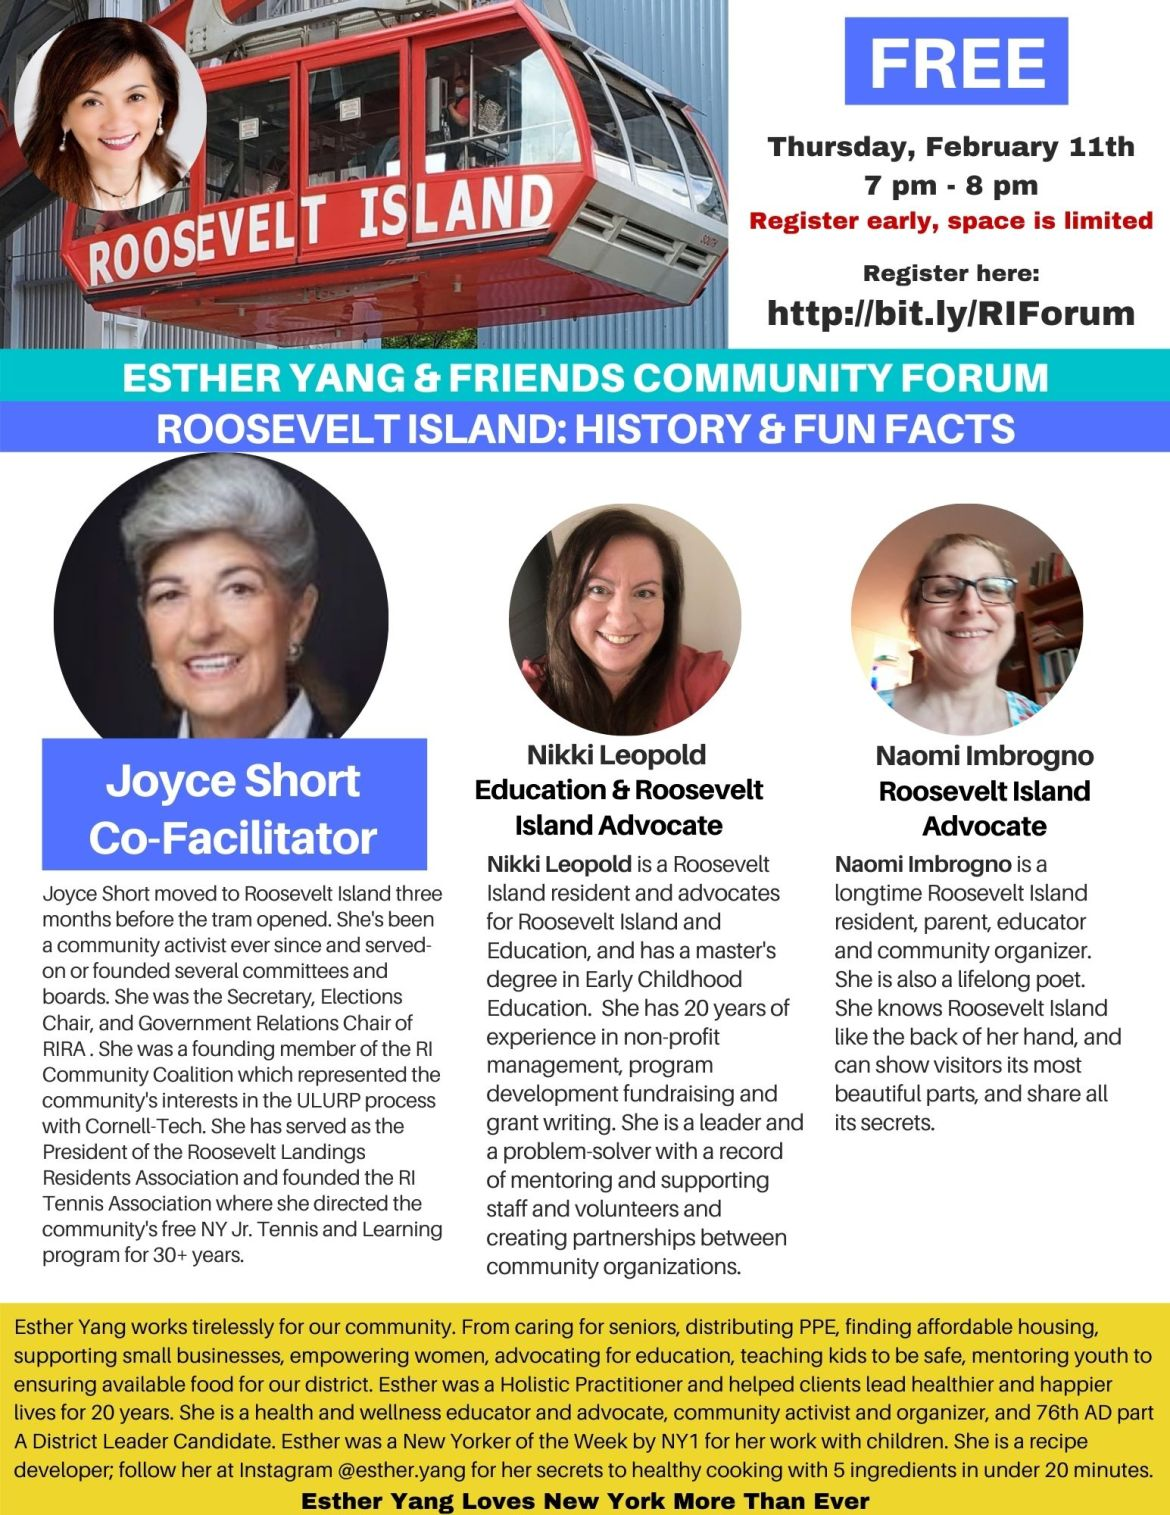 Thursday: Esther Yang and Friends Community Forum, Roosevelt Island History and Fun Facts